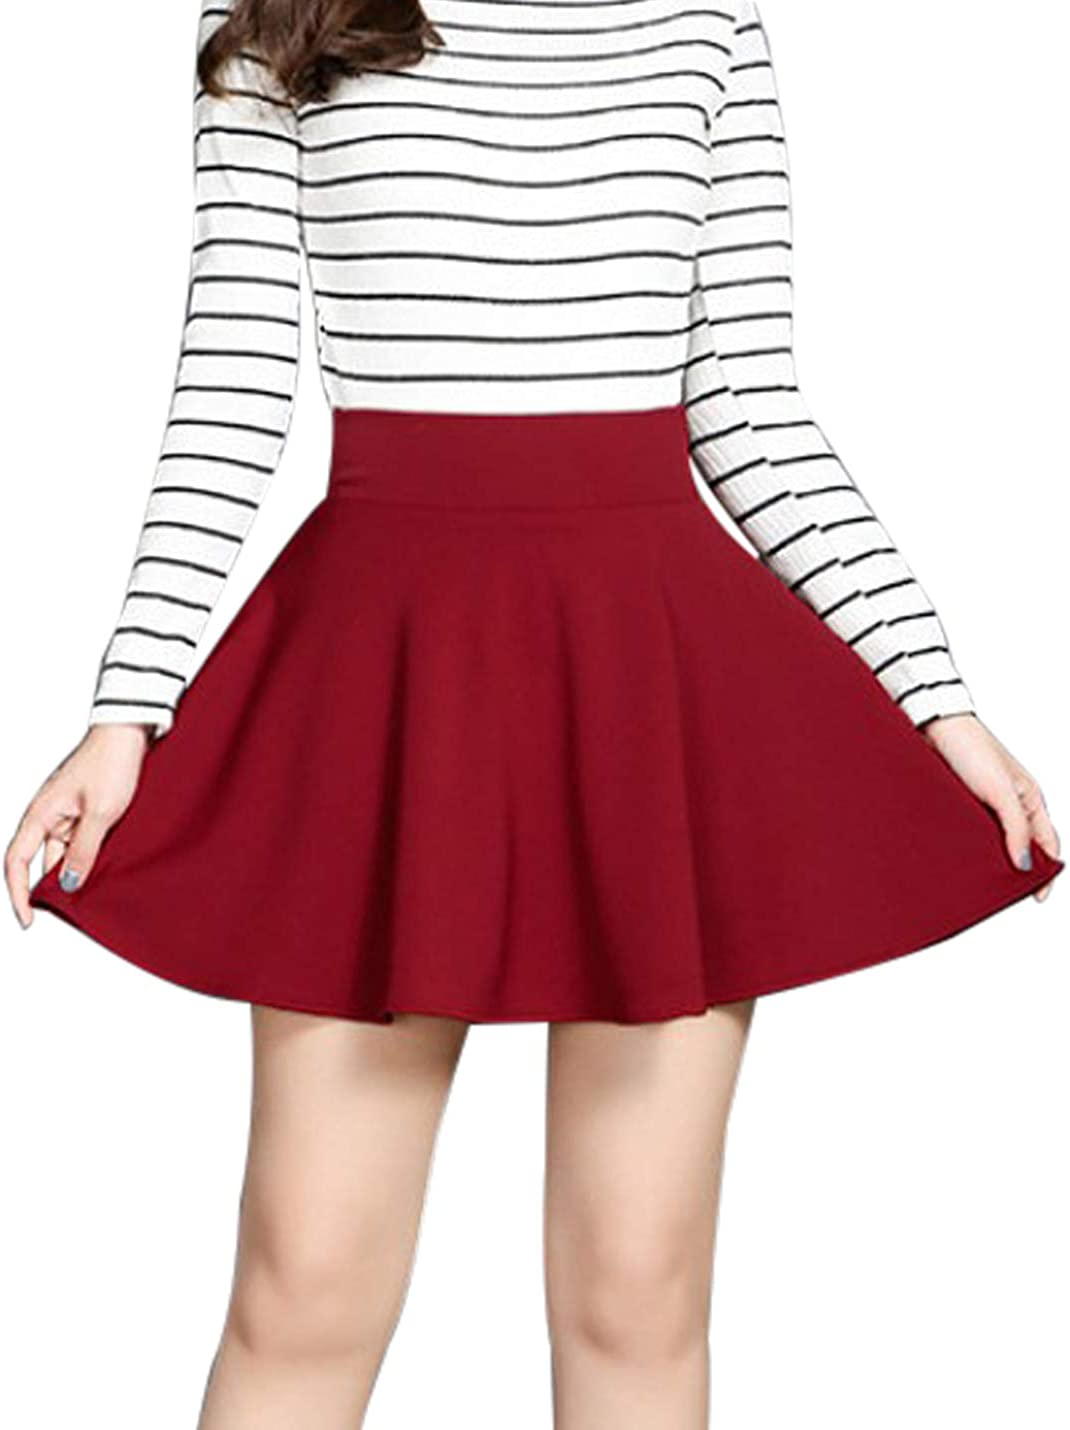 Women's Basic High Waist Stretchy A-line Flared Circle Swing Dance Party Casual Skater Short Skirt